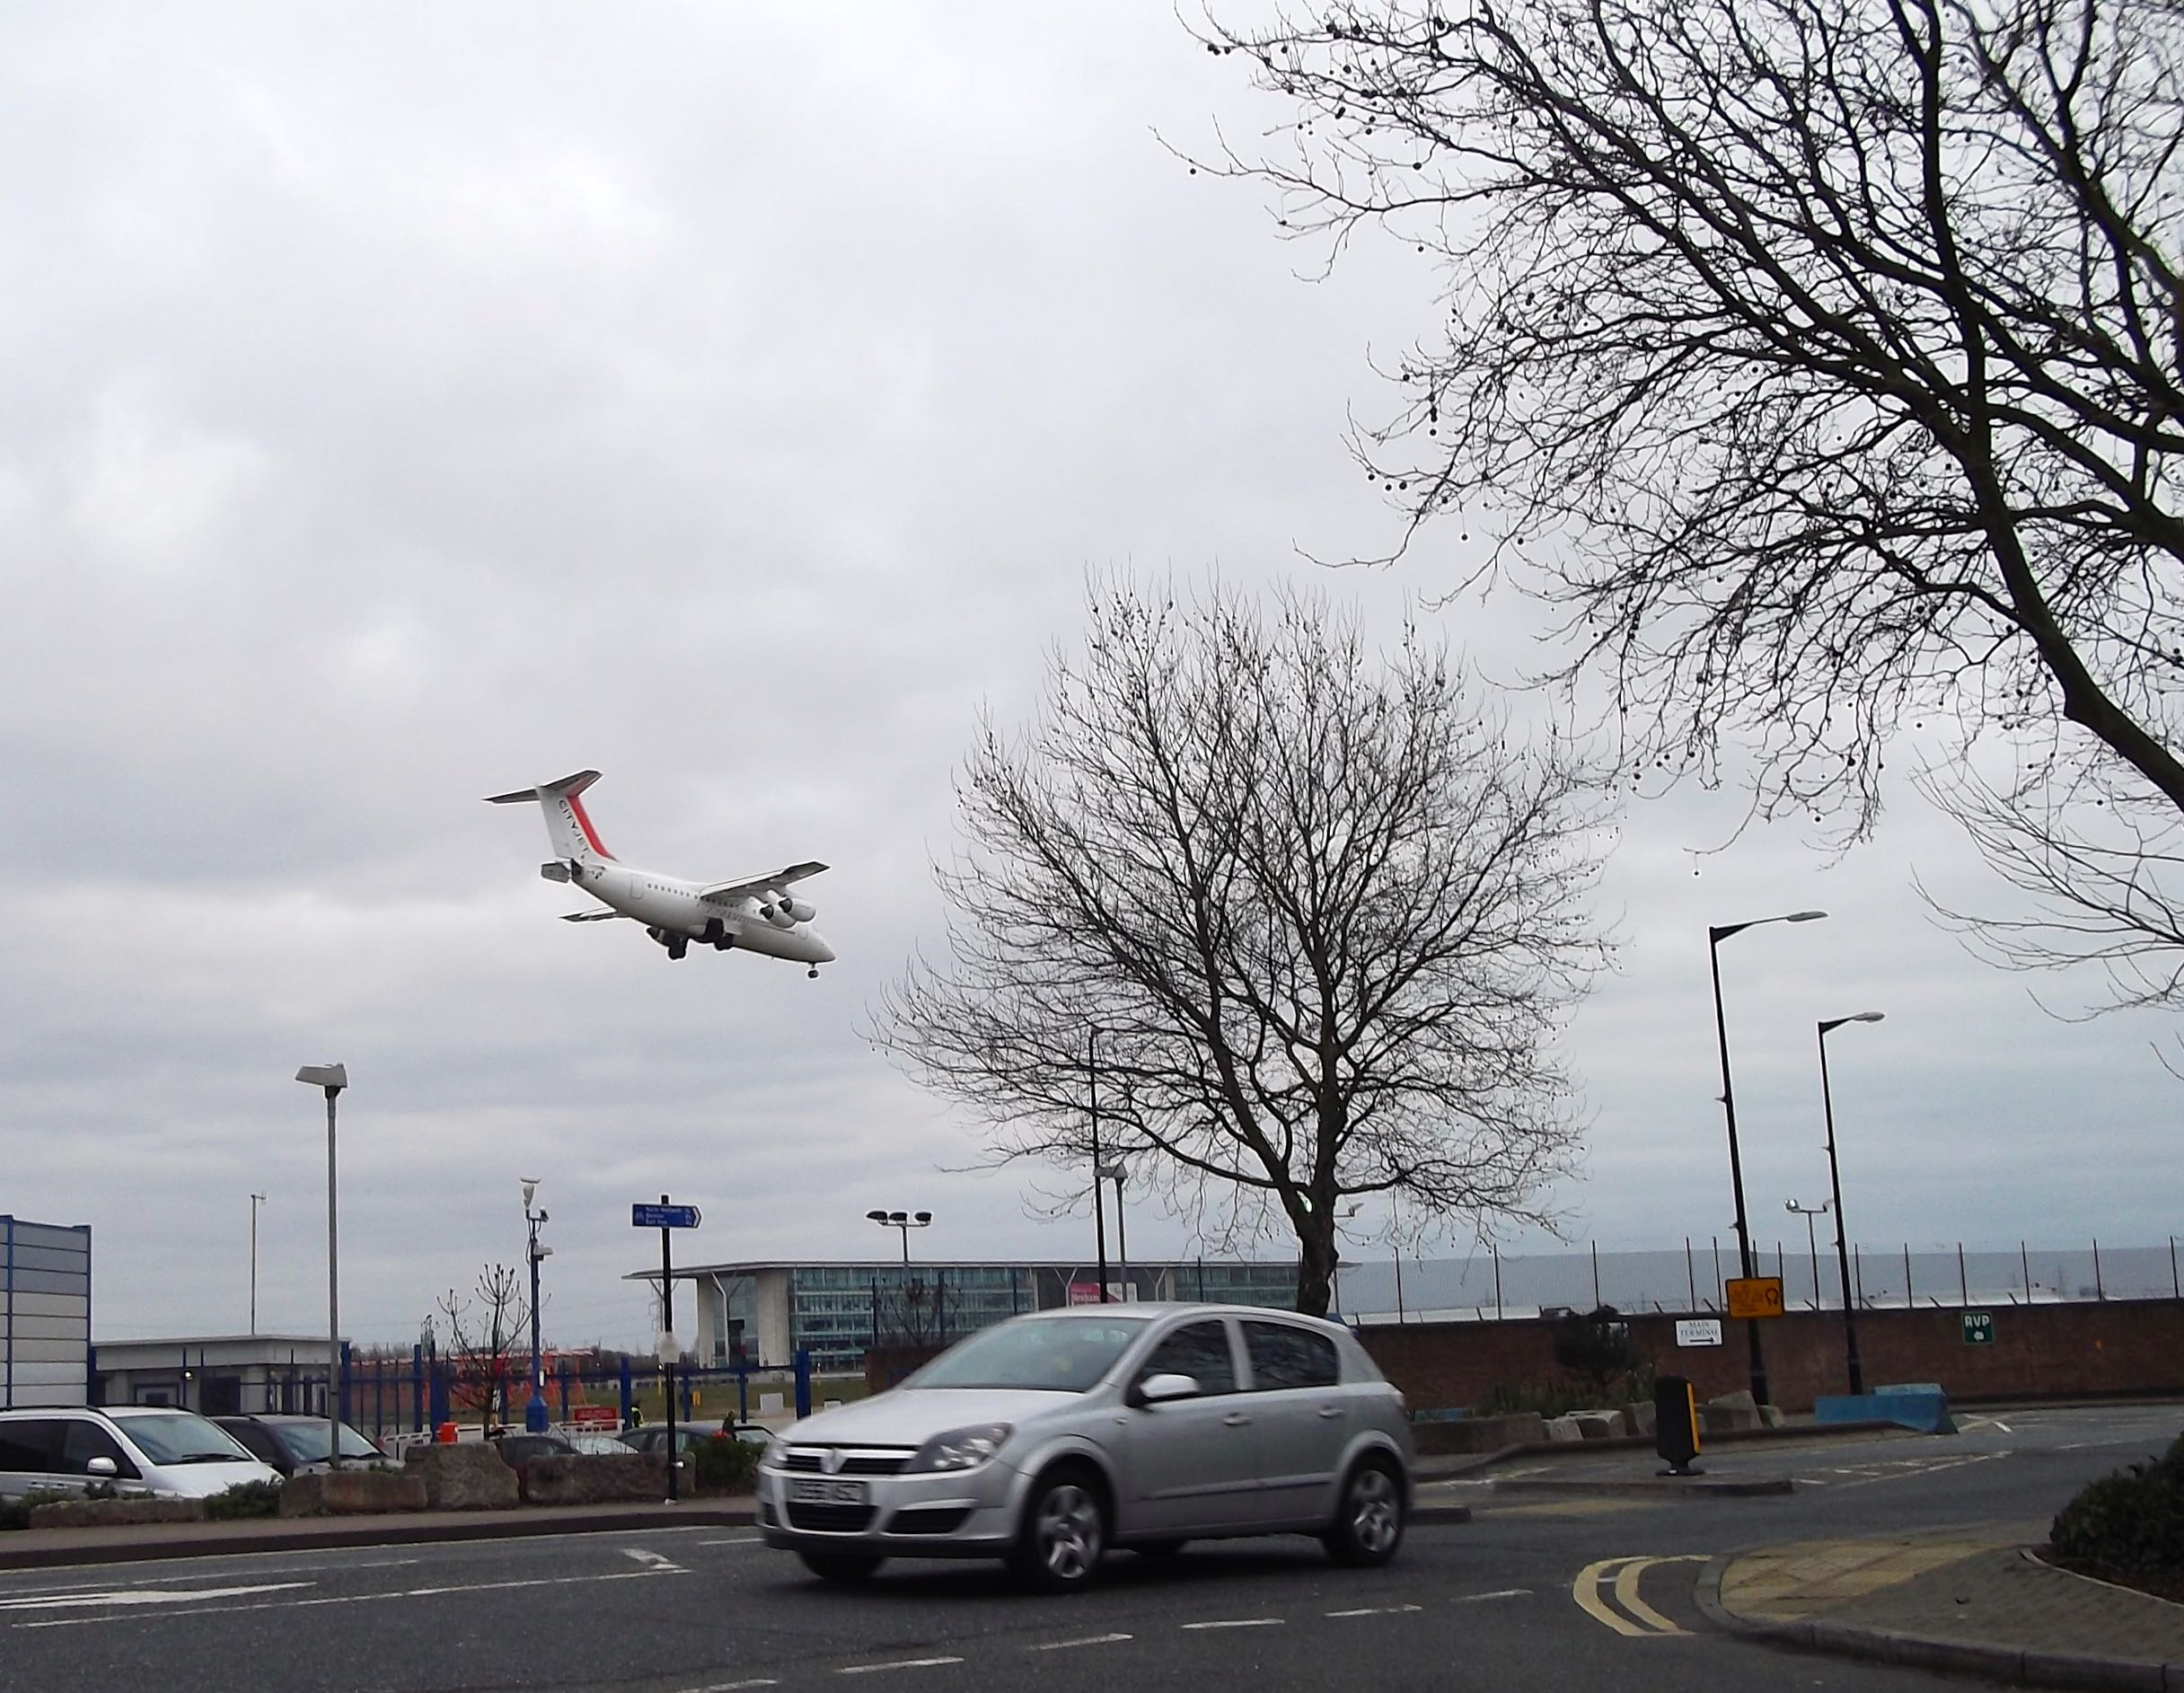 A PLANE LANDING AT CITY AIRPORT